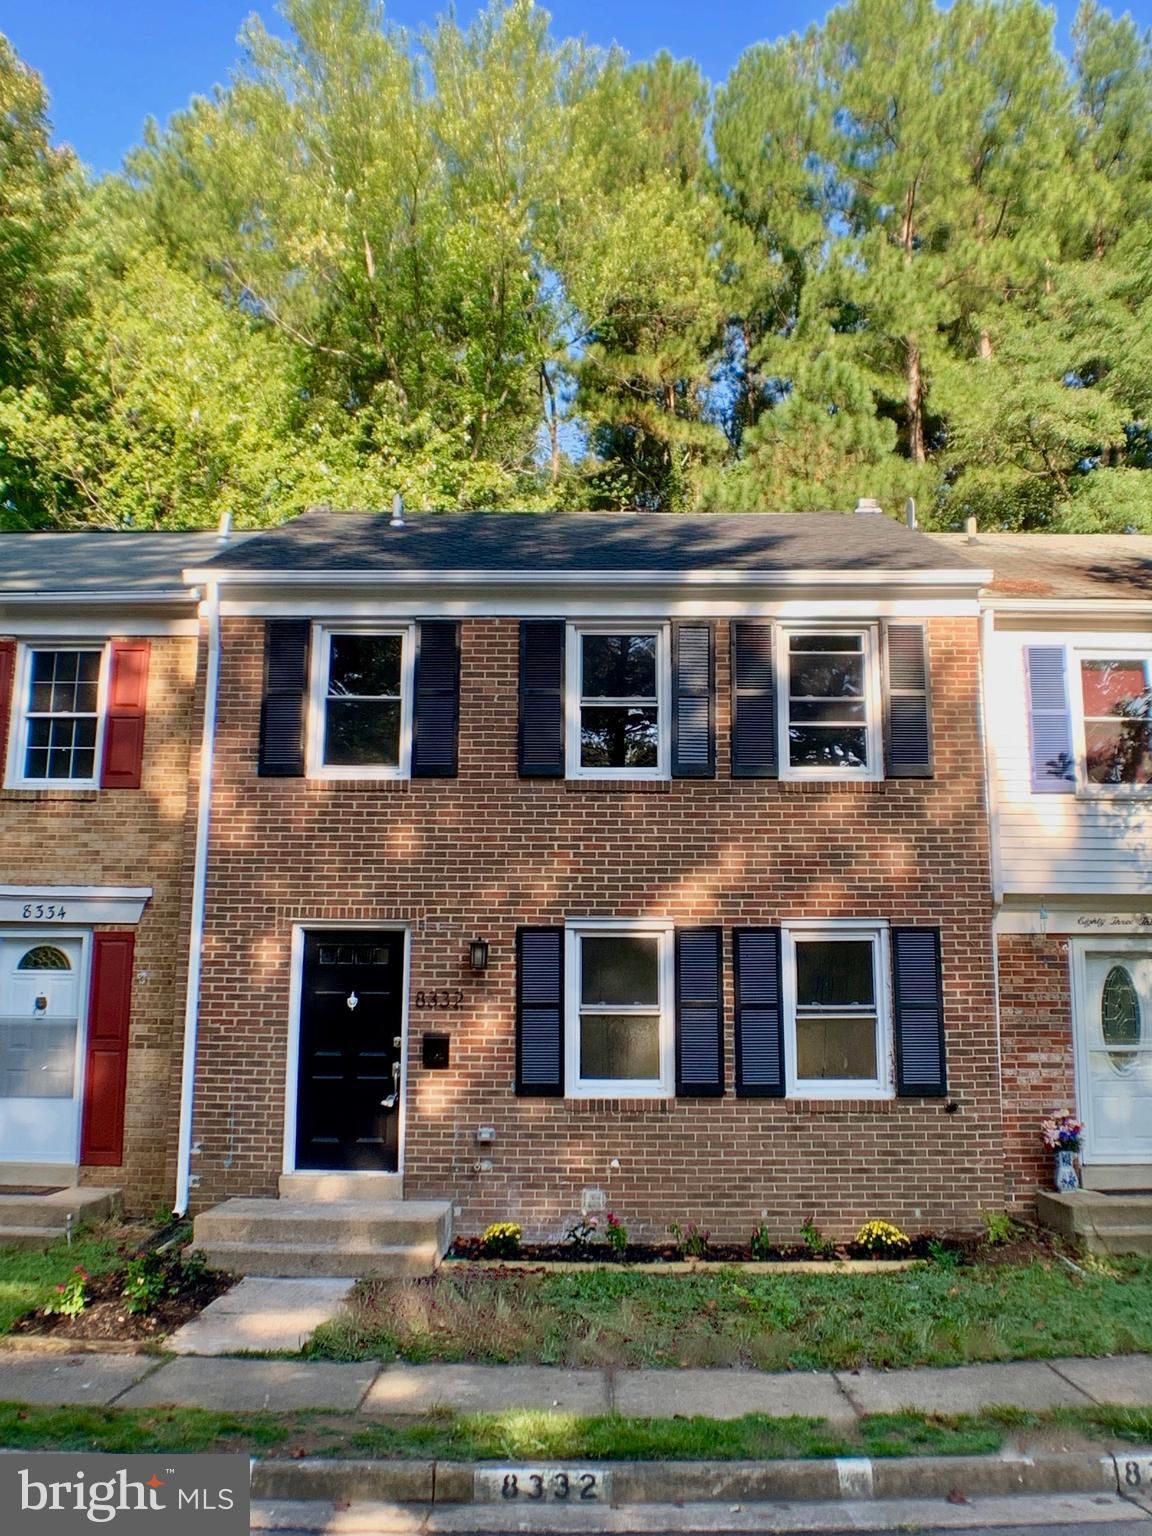 Stunning Renovation!  Great Location! Open Floor Concept. Gourmet Kitchen includes Granite Counters, Island with New Modern Pendant Lighting, Subway Tile Backsplash, Stainless Steel Appliances and New Kitchen Cabinets. New Hardwood Flooring on Main Level and New Carpet in Basement and Top Level, New Interior Paint. 3 Full Renovated Baths.  New Roof.  New HVAC.  New Hot Water Heater.  9/11/19 MOLD CERTIFICATE OF ANALYSIS INCLUDED IN DOCUMENTS.